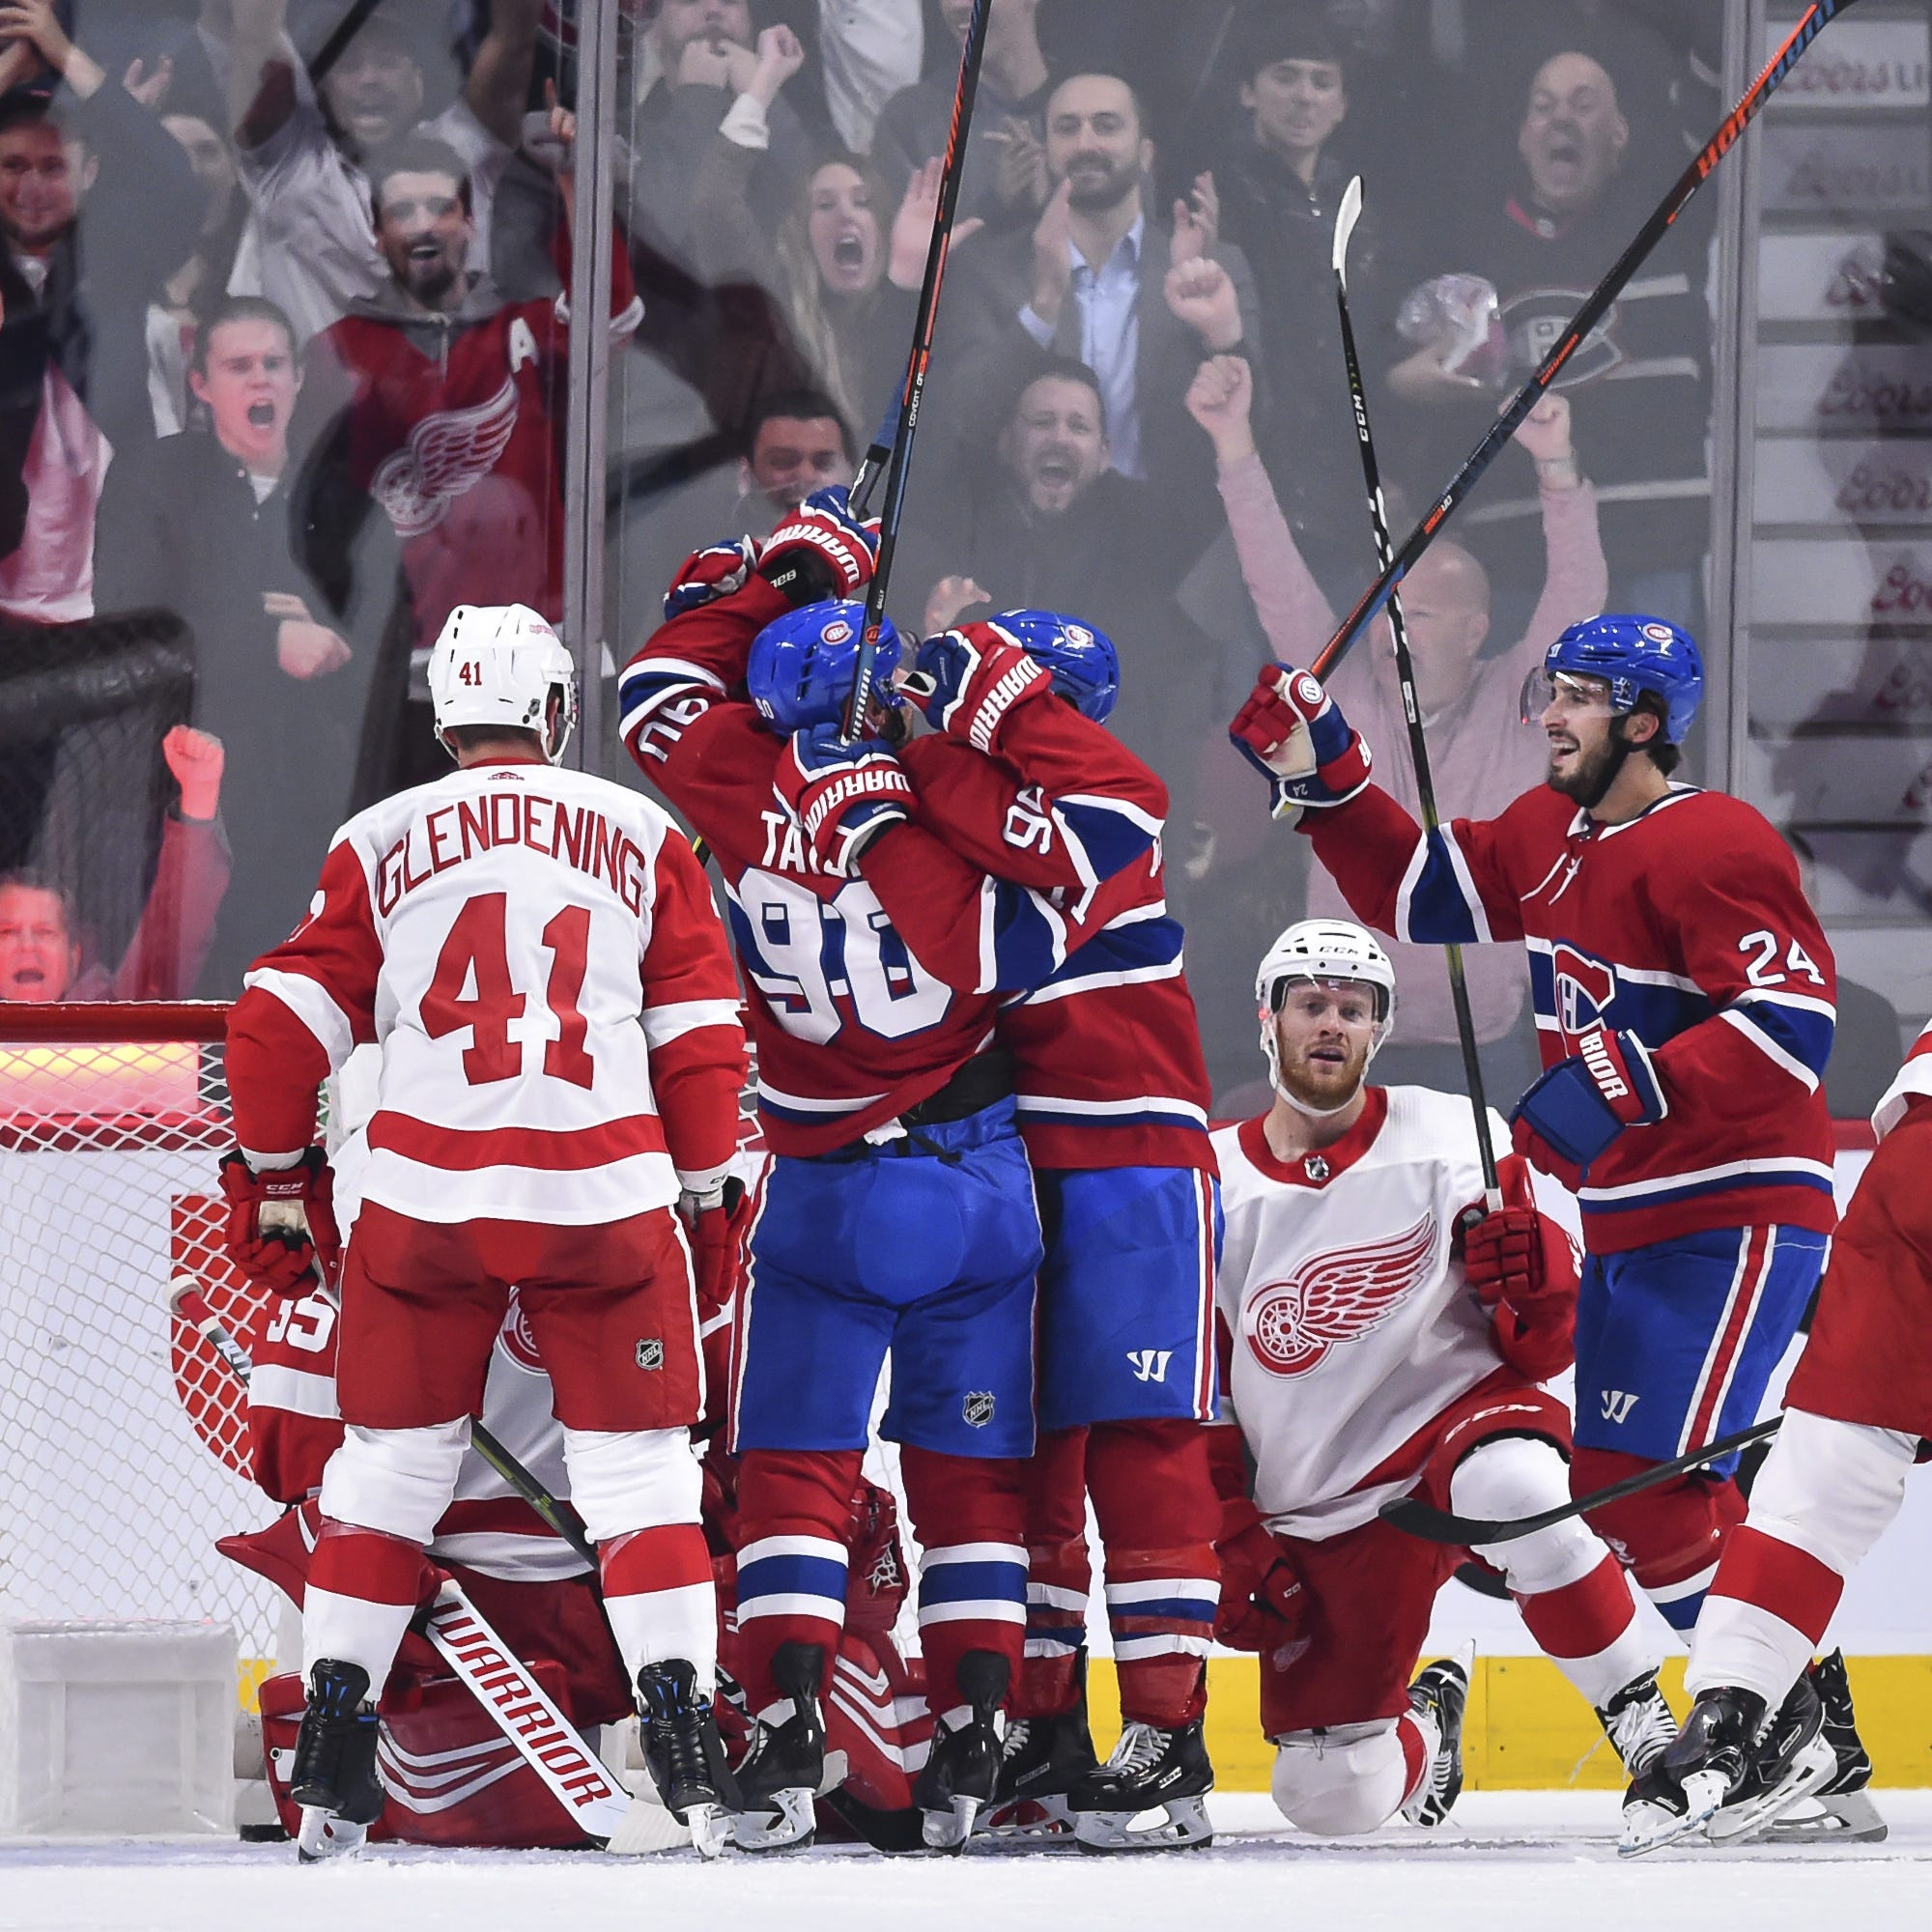 Detroit Red Wings make a mockery of themselves in 7-3 loss to Montreal